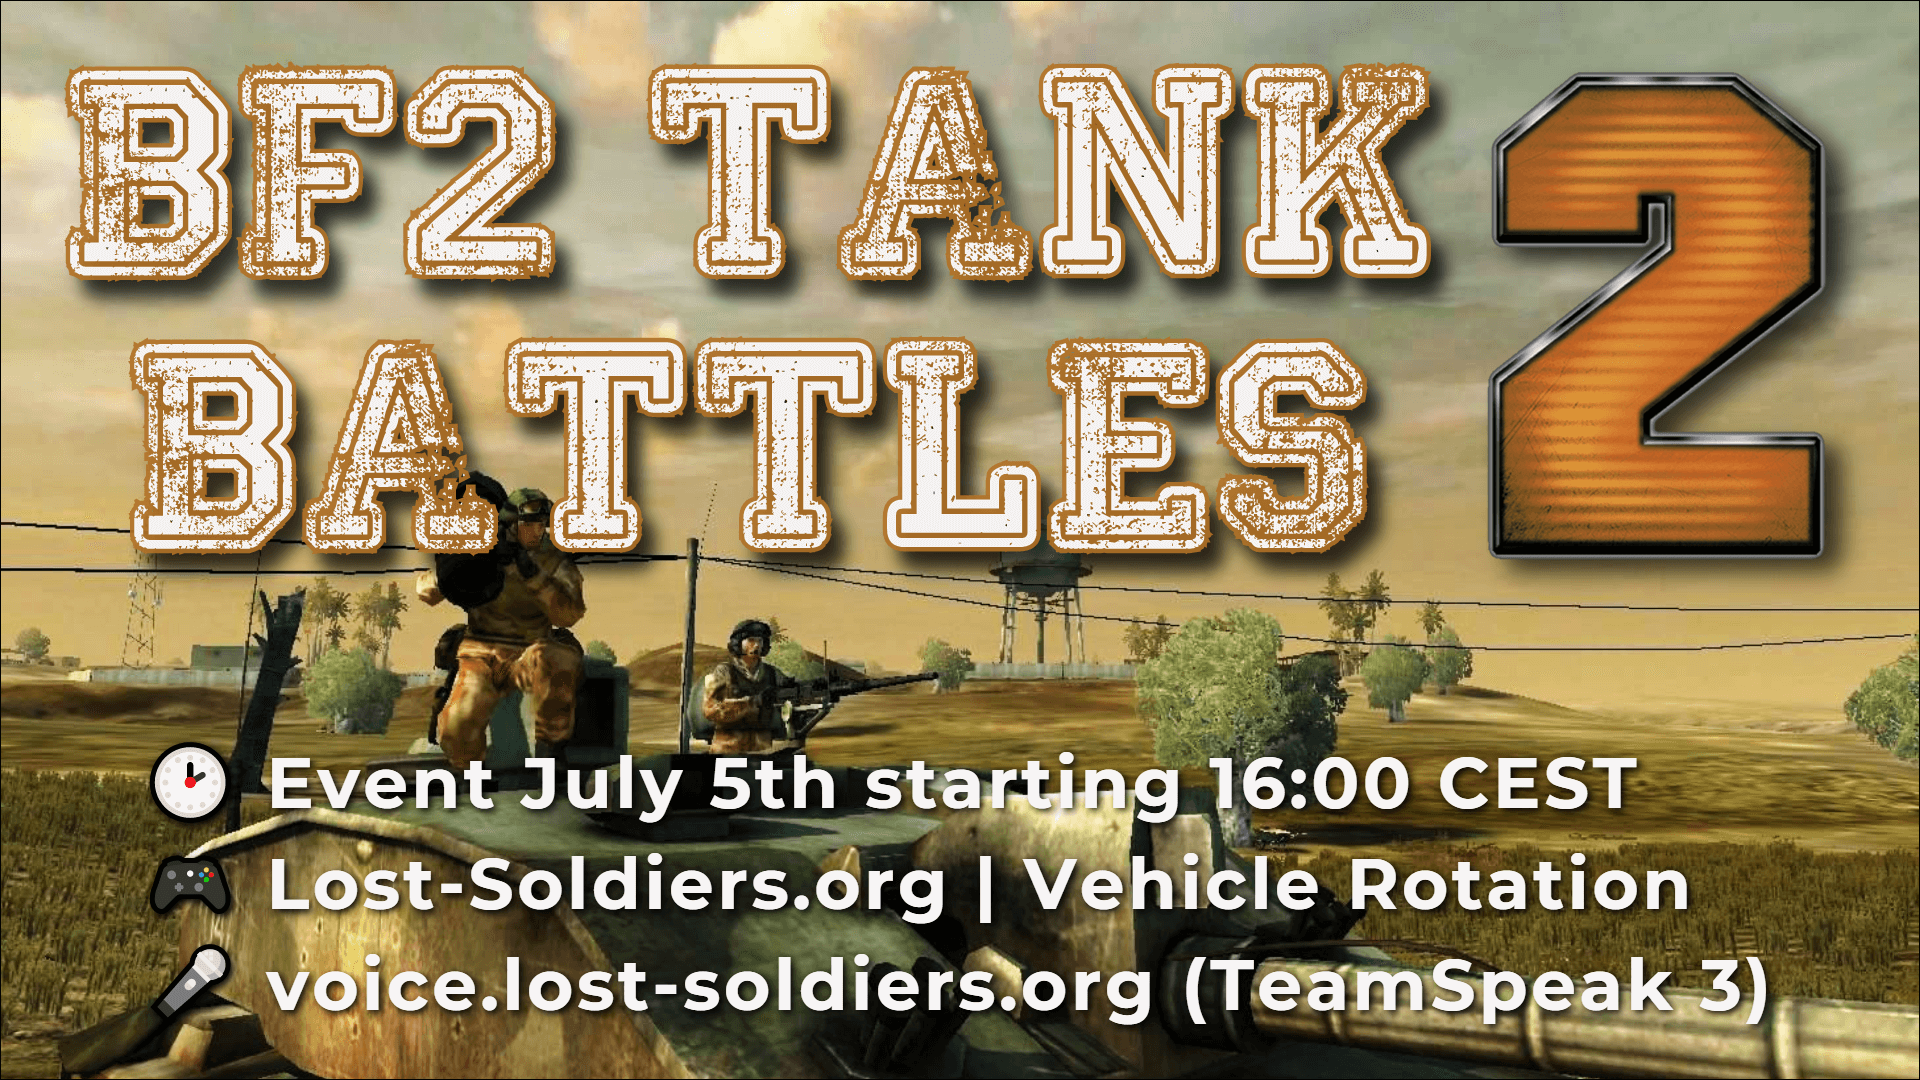 https://www.lost-soldiers.org/images/news-pics/Tank-Battle-Event-2020-min.png